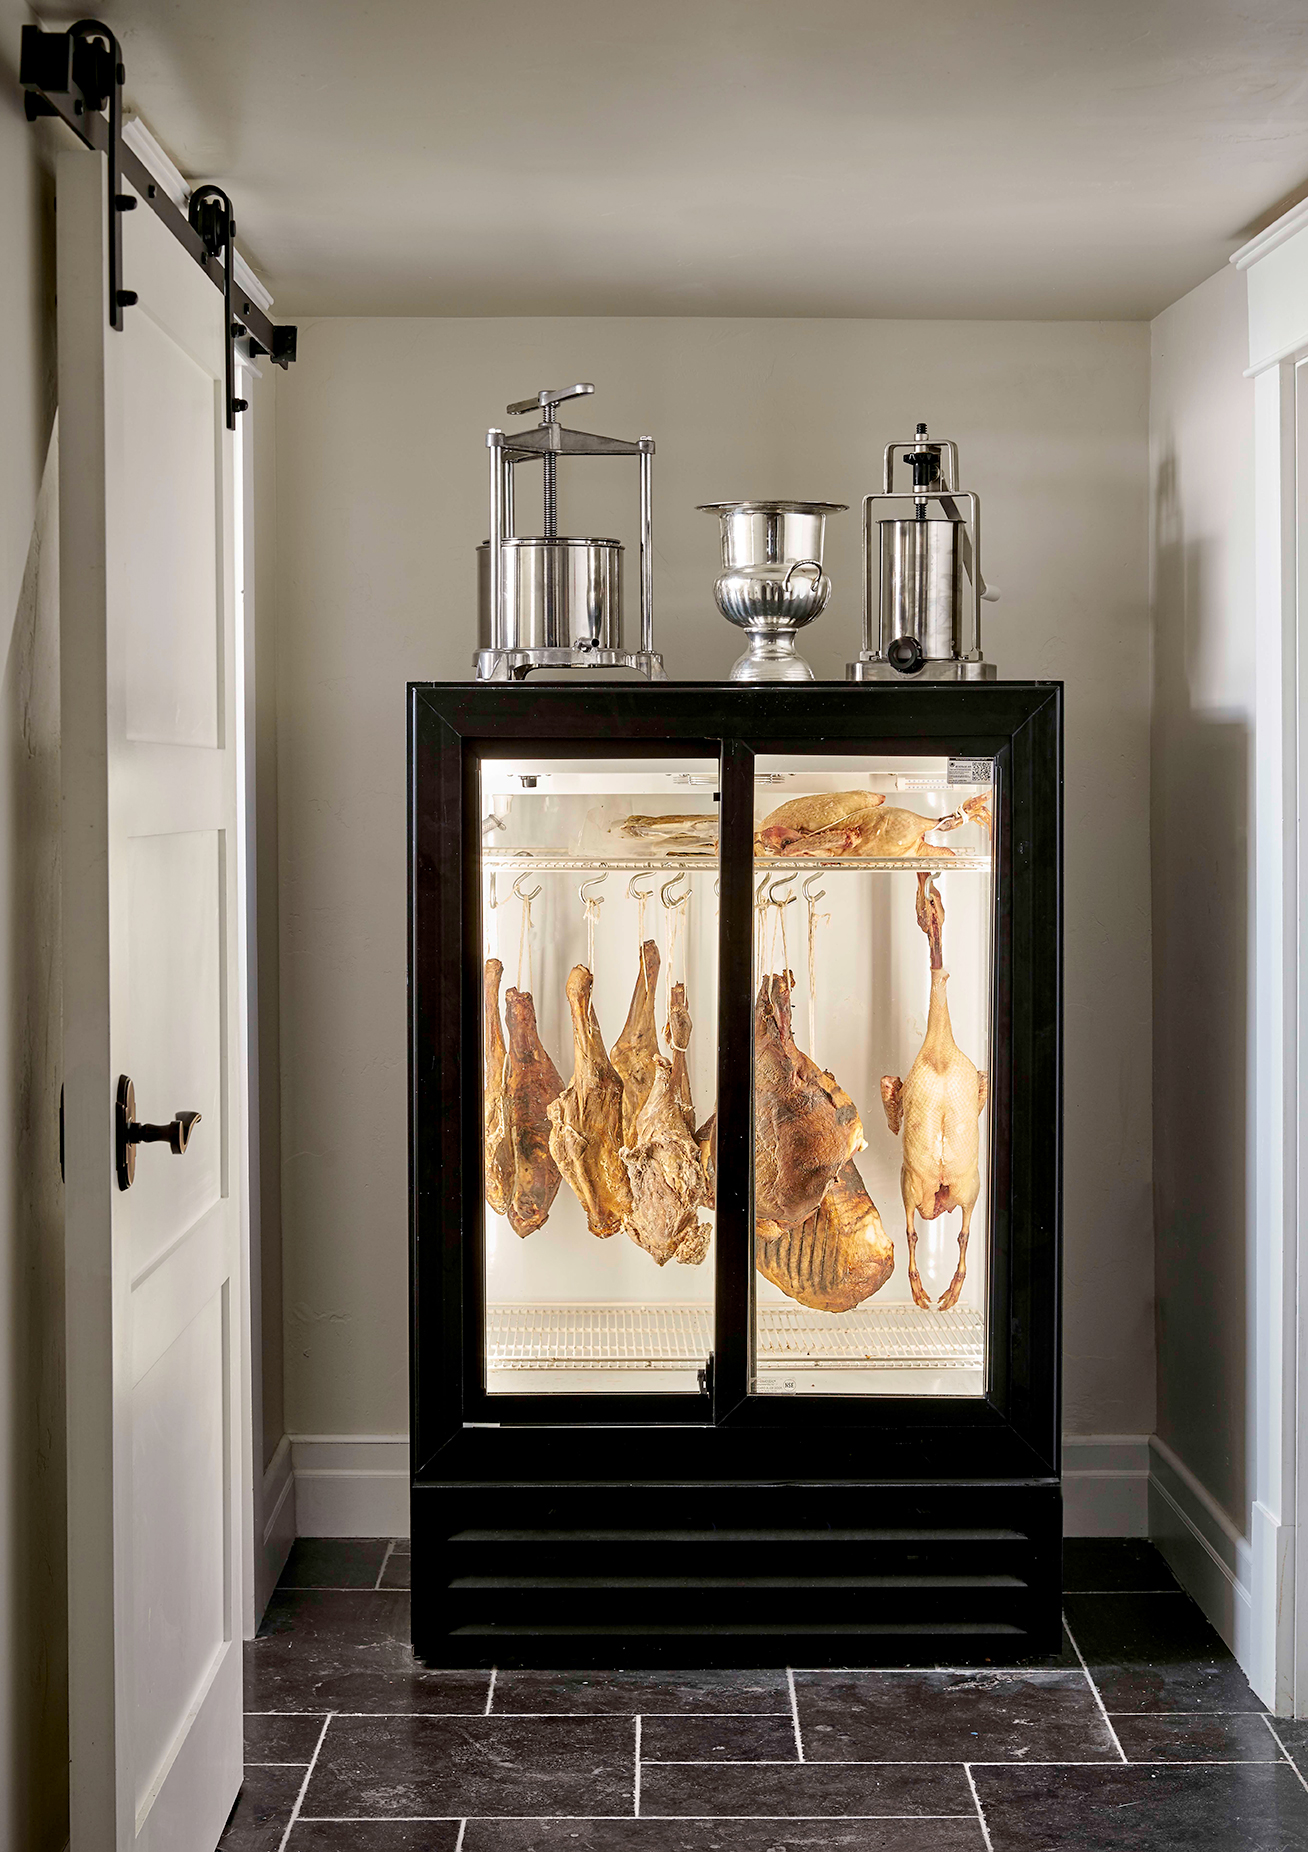 Vertical-Arts-Cloverdale-01-24-18-Lower-Level-Meat-Aging-123mb.jpg